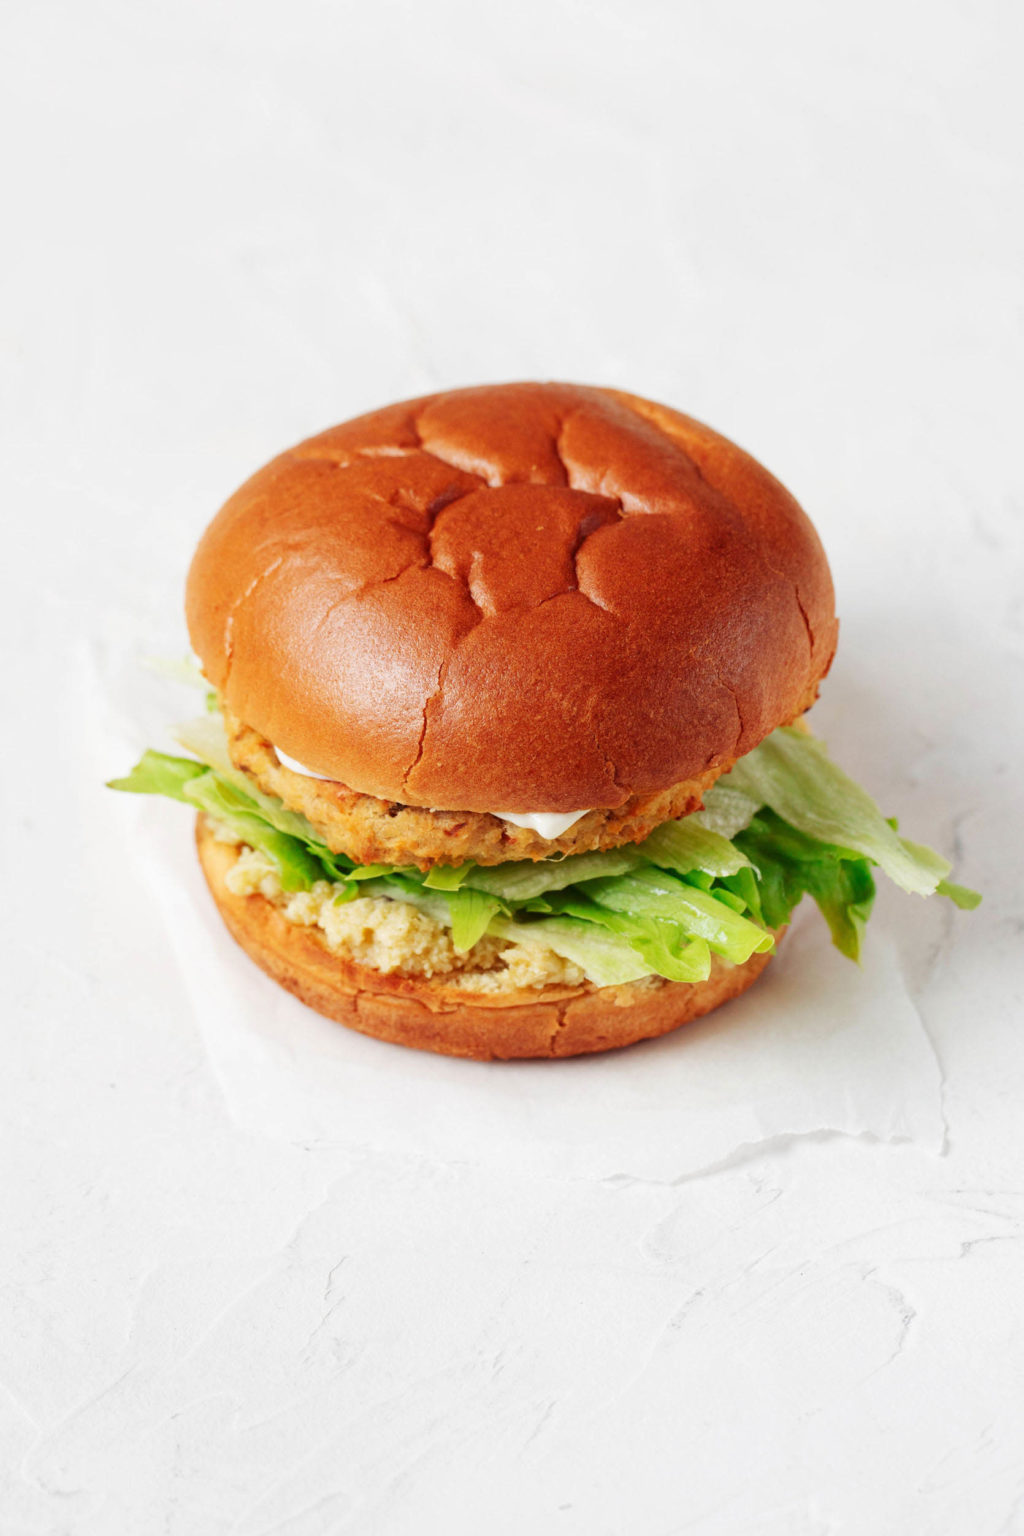 A vegetable based burger is served on a fluffy burger bun. It rests on a white sheet of parchment.